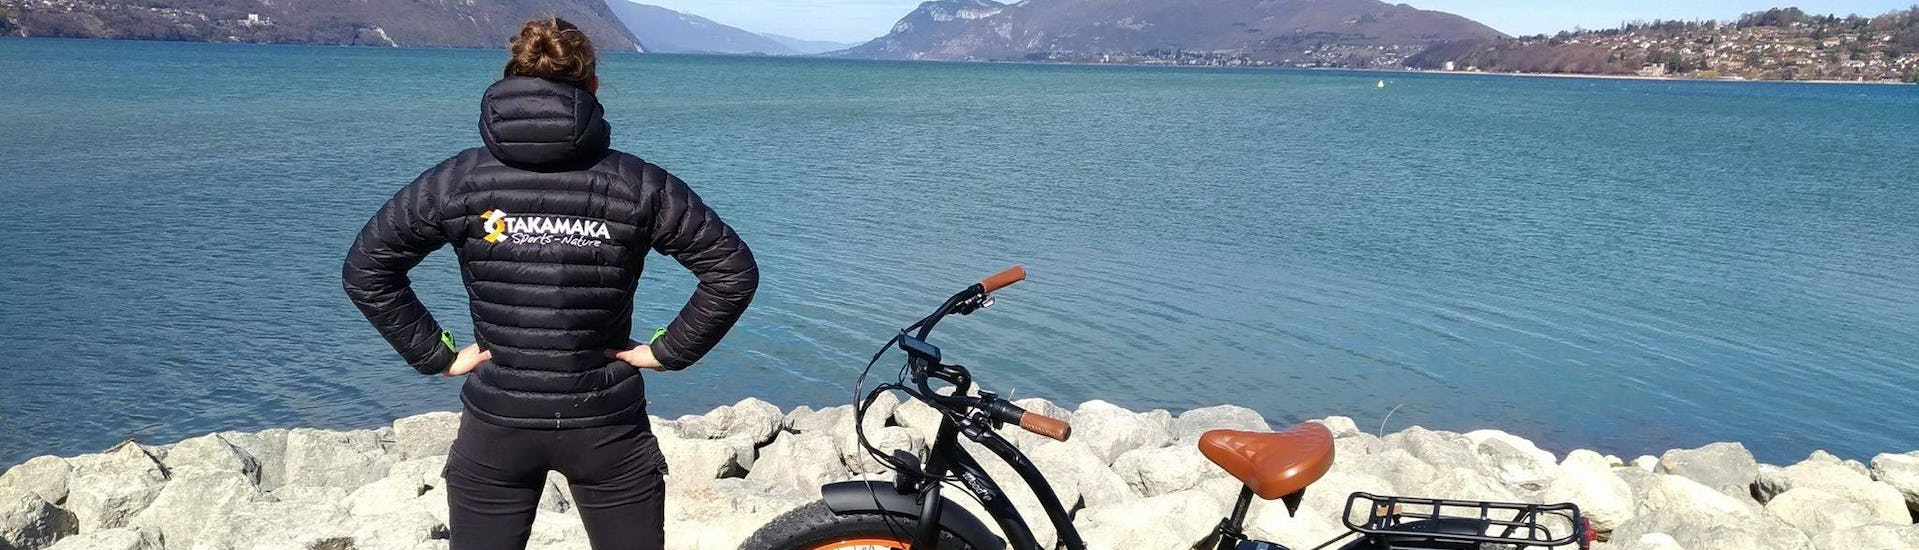 A local guide from Takamaka Aix Les Bains is contemplating the Lac du Bourget around which a lot of outdoor activities such as paragliding and canynoning take place.